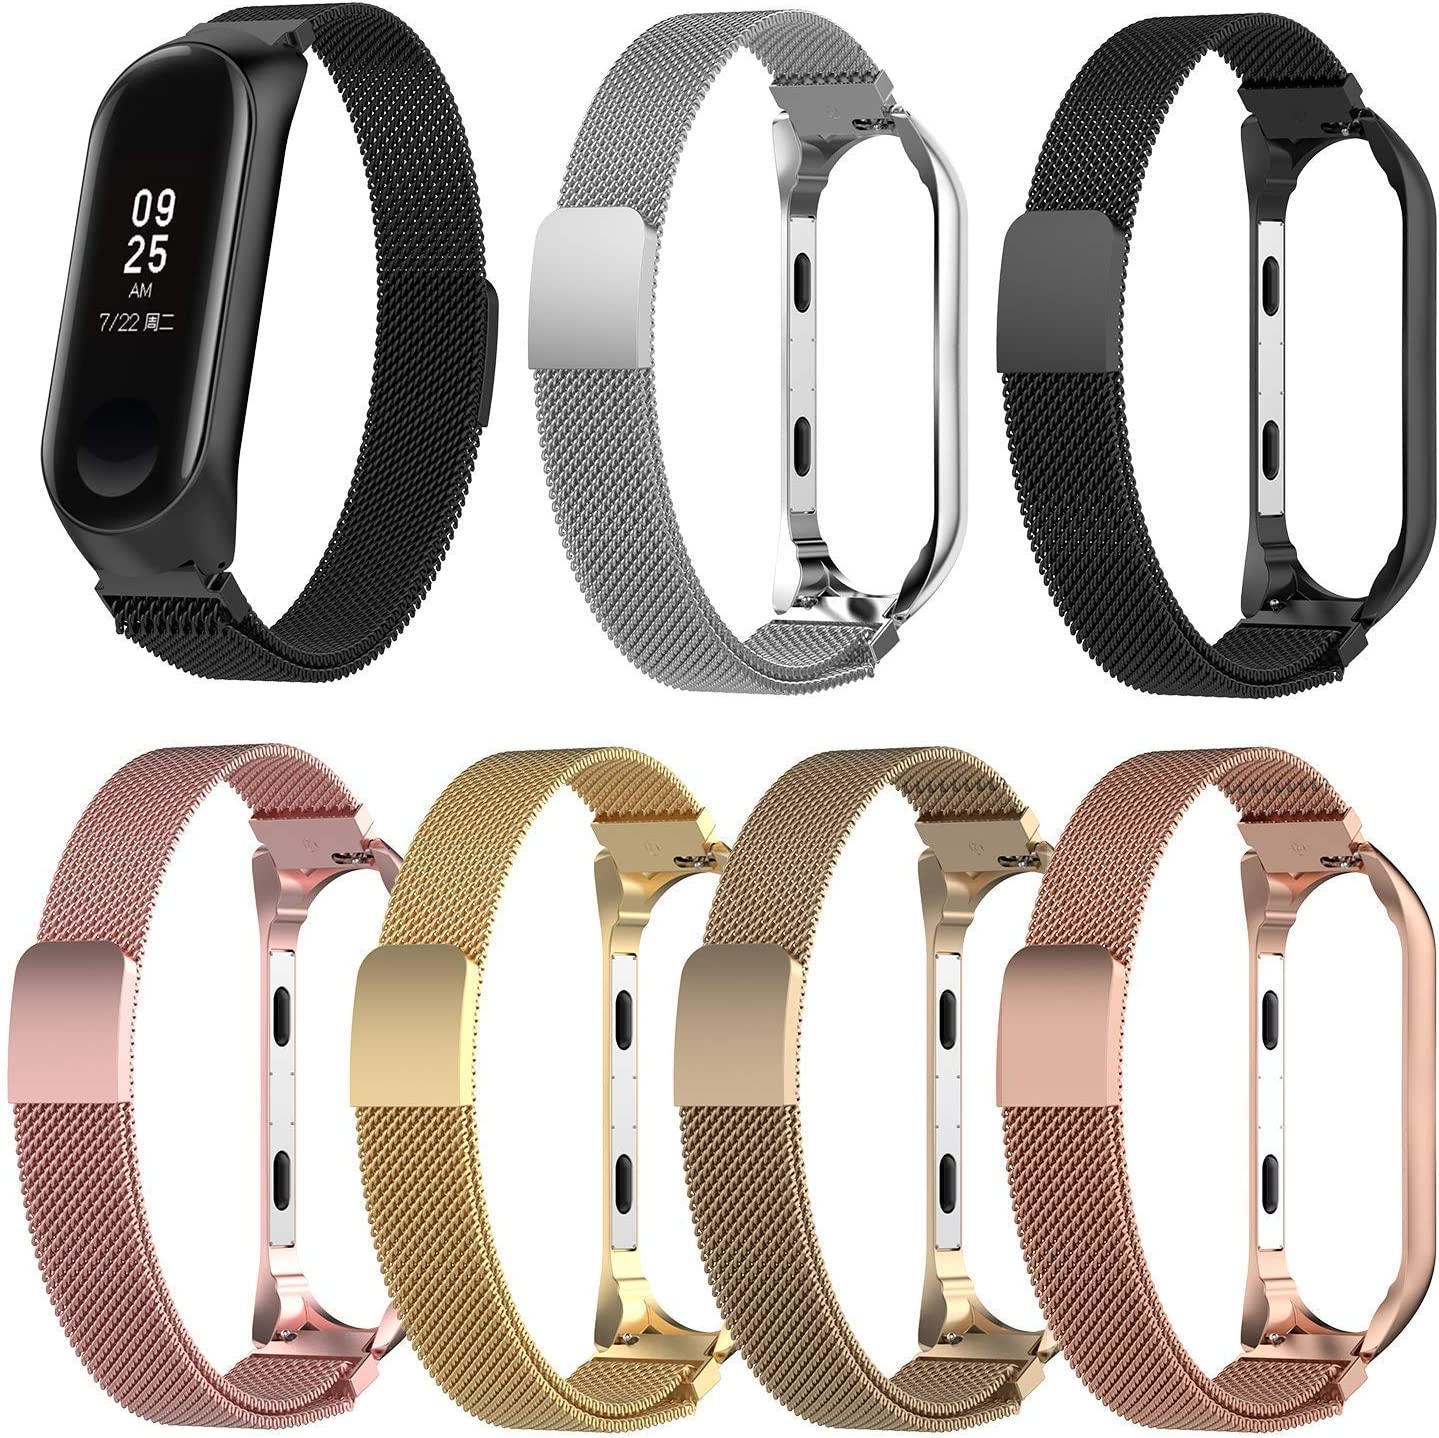 OUYAWEI Favorite for Replacement Strap for Xiaomi Bracelet 4 Metal Strap Wrist Strap Stainless Steel Replacement Strap Black